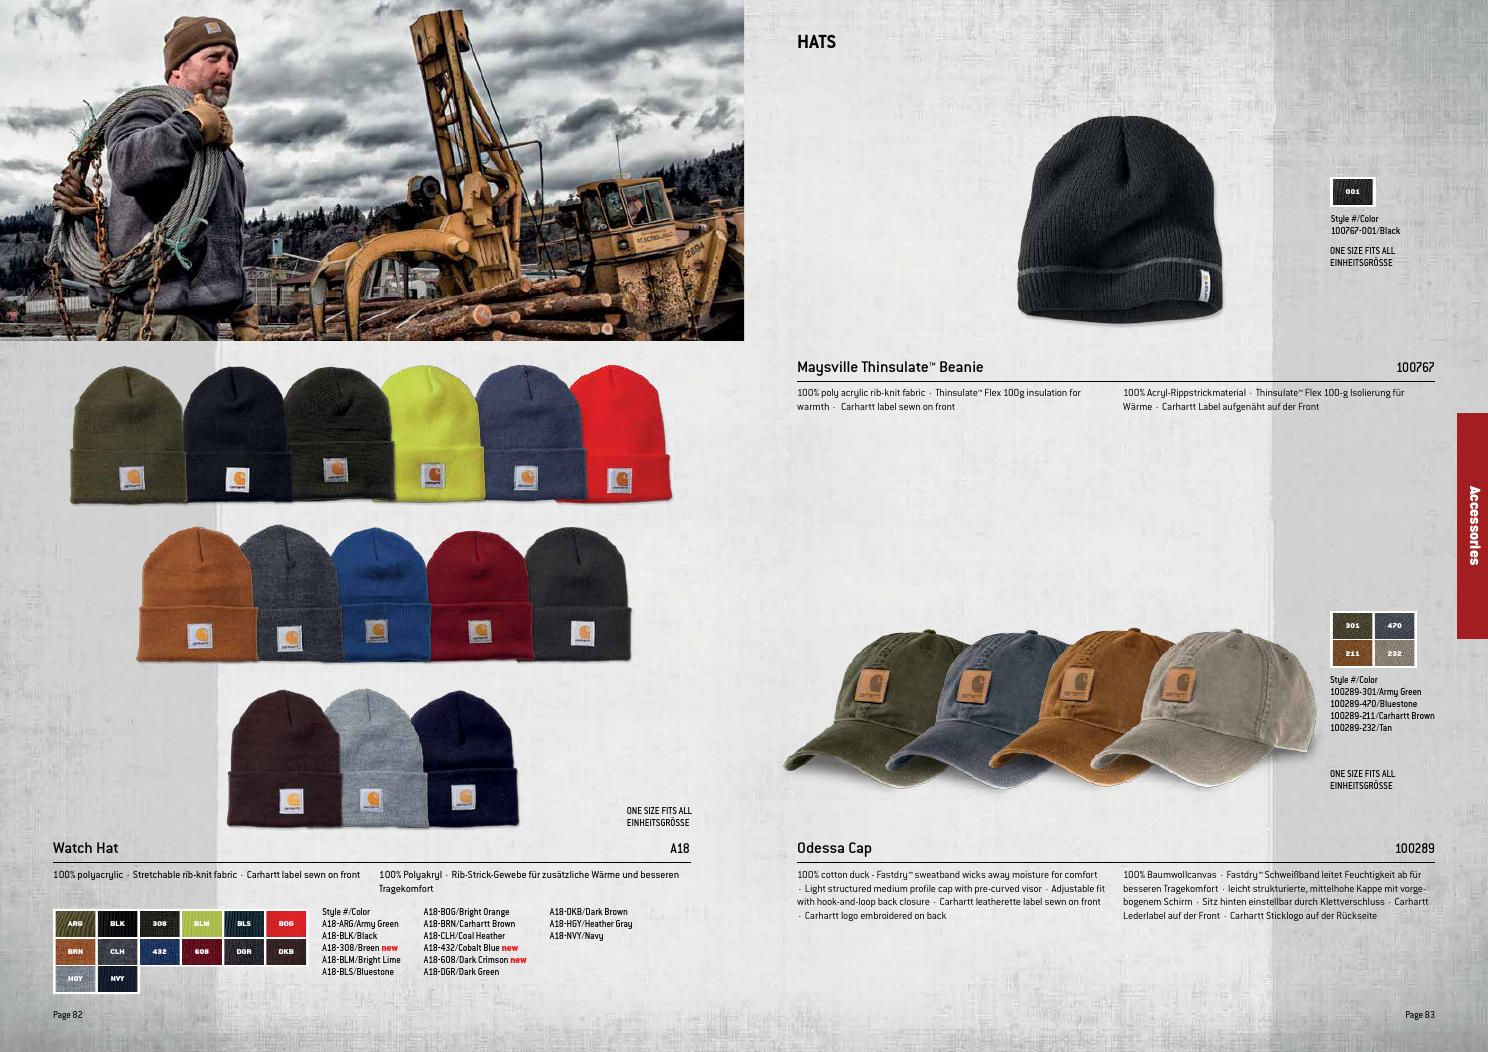 65bad432a162d7 Carhartt Workwear Europe Winter 2014 by Carhartt Europe - issuu